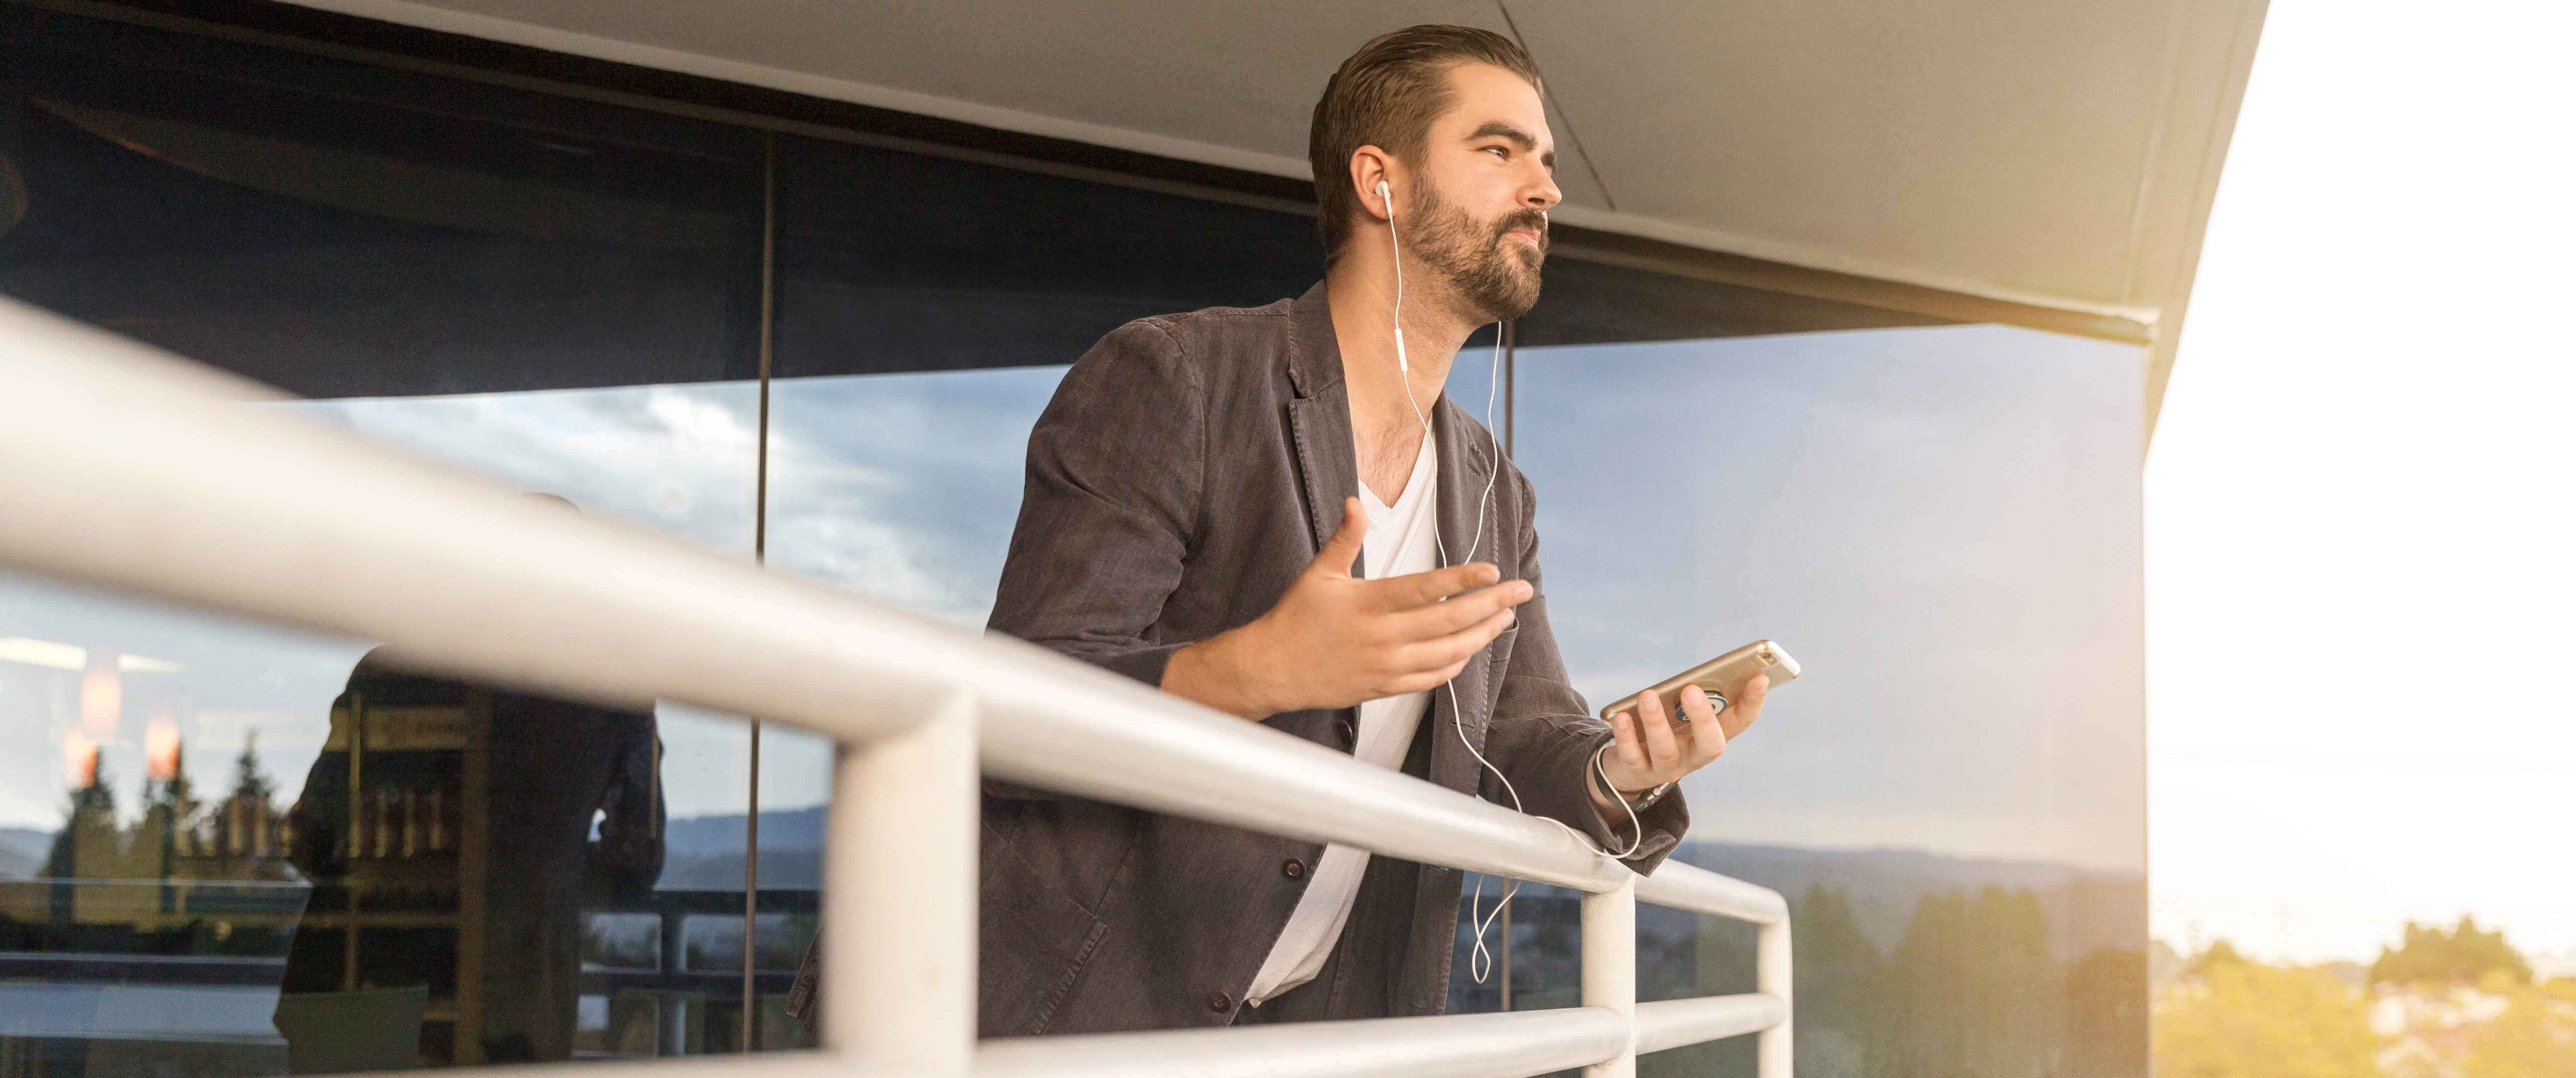 Man with sport jacket talking on iPhone with headset over a railing